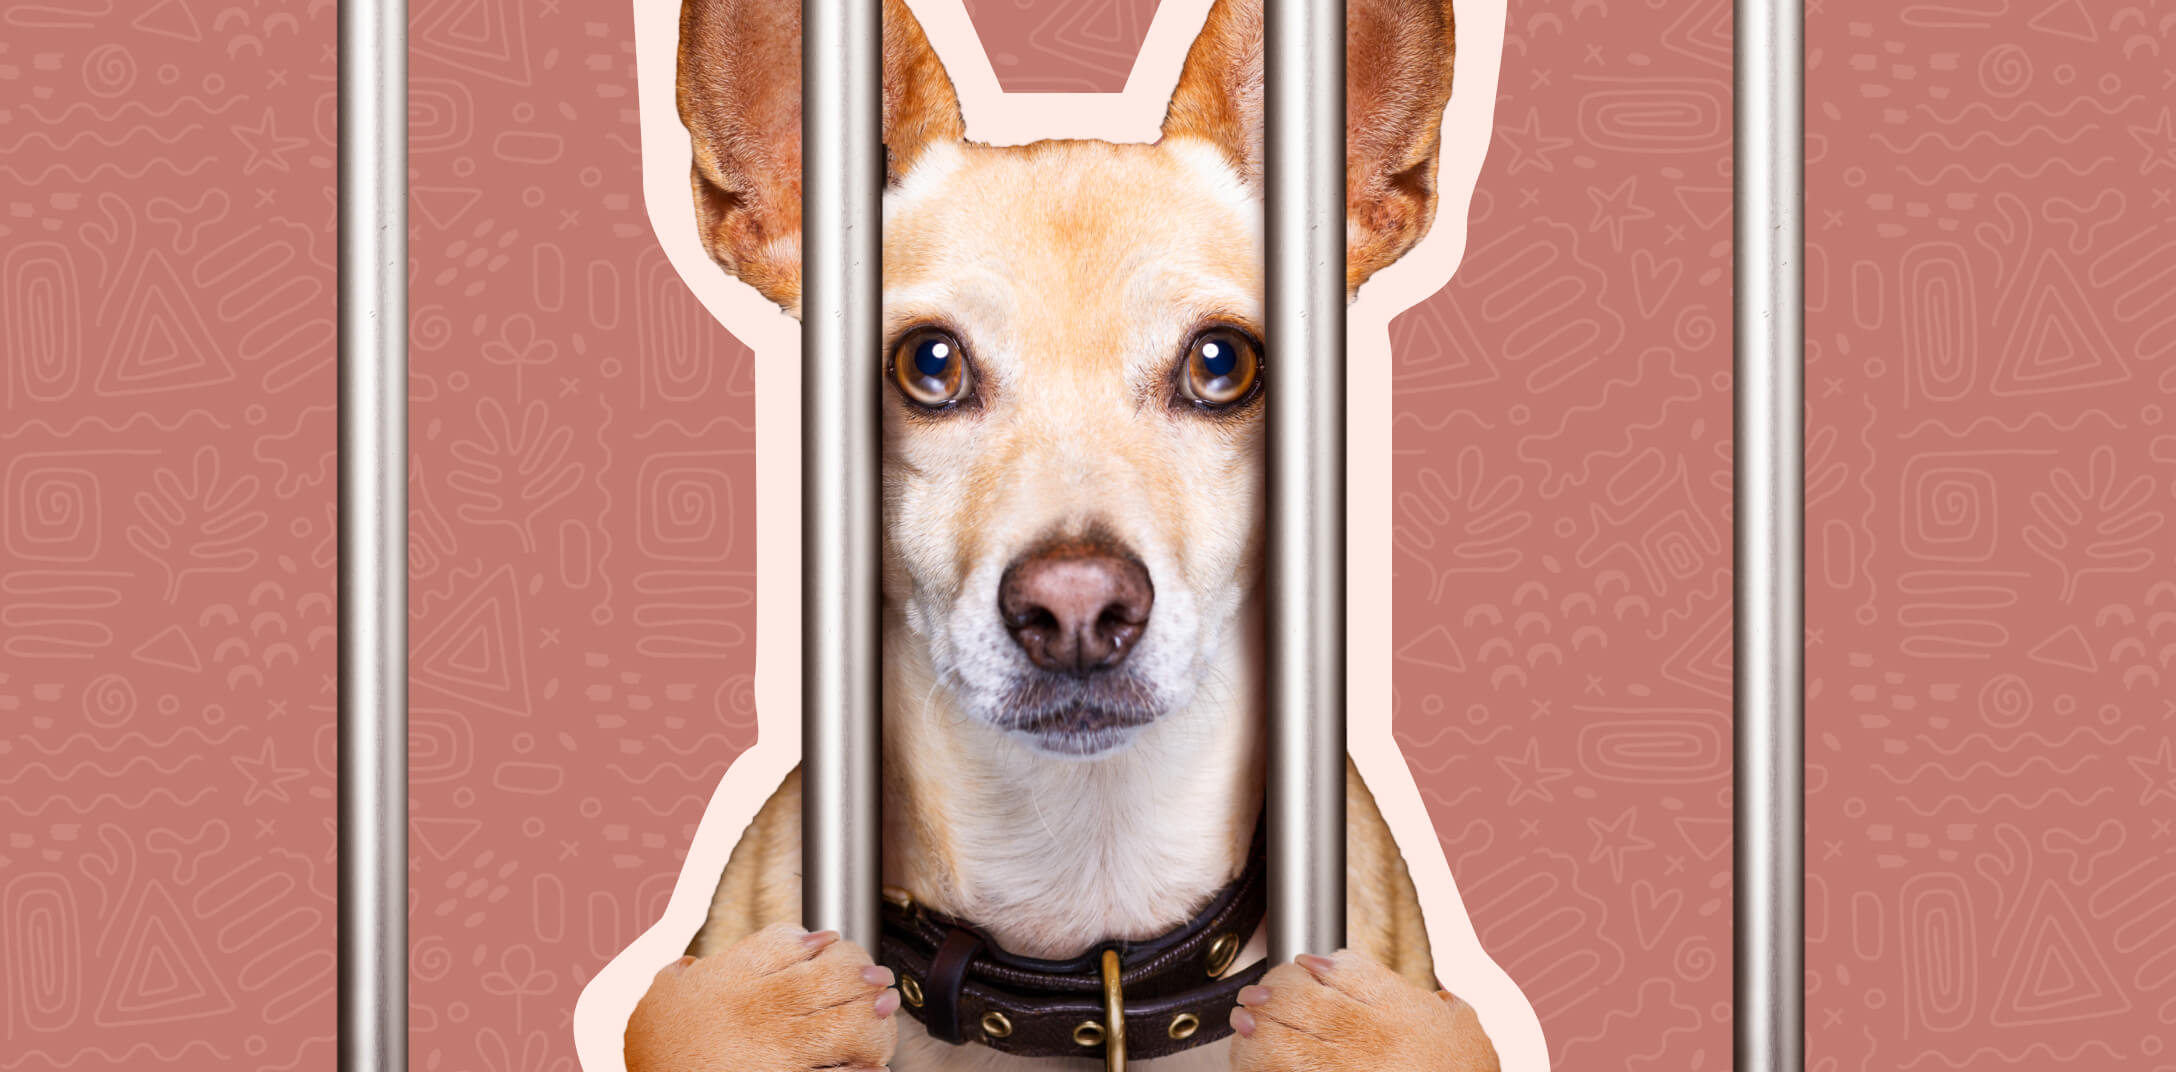 A small dog behind the bars